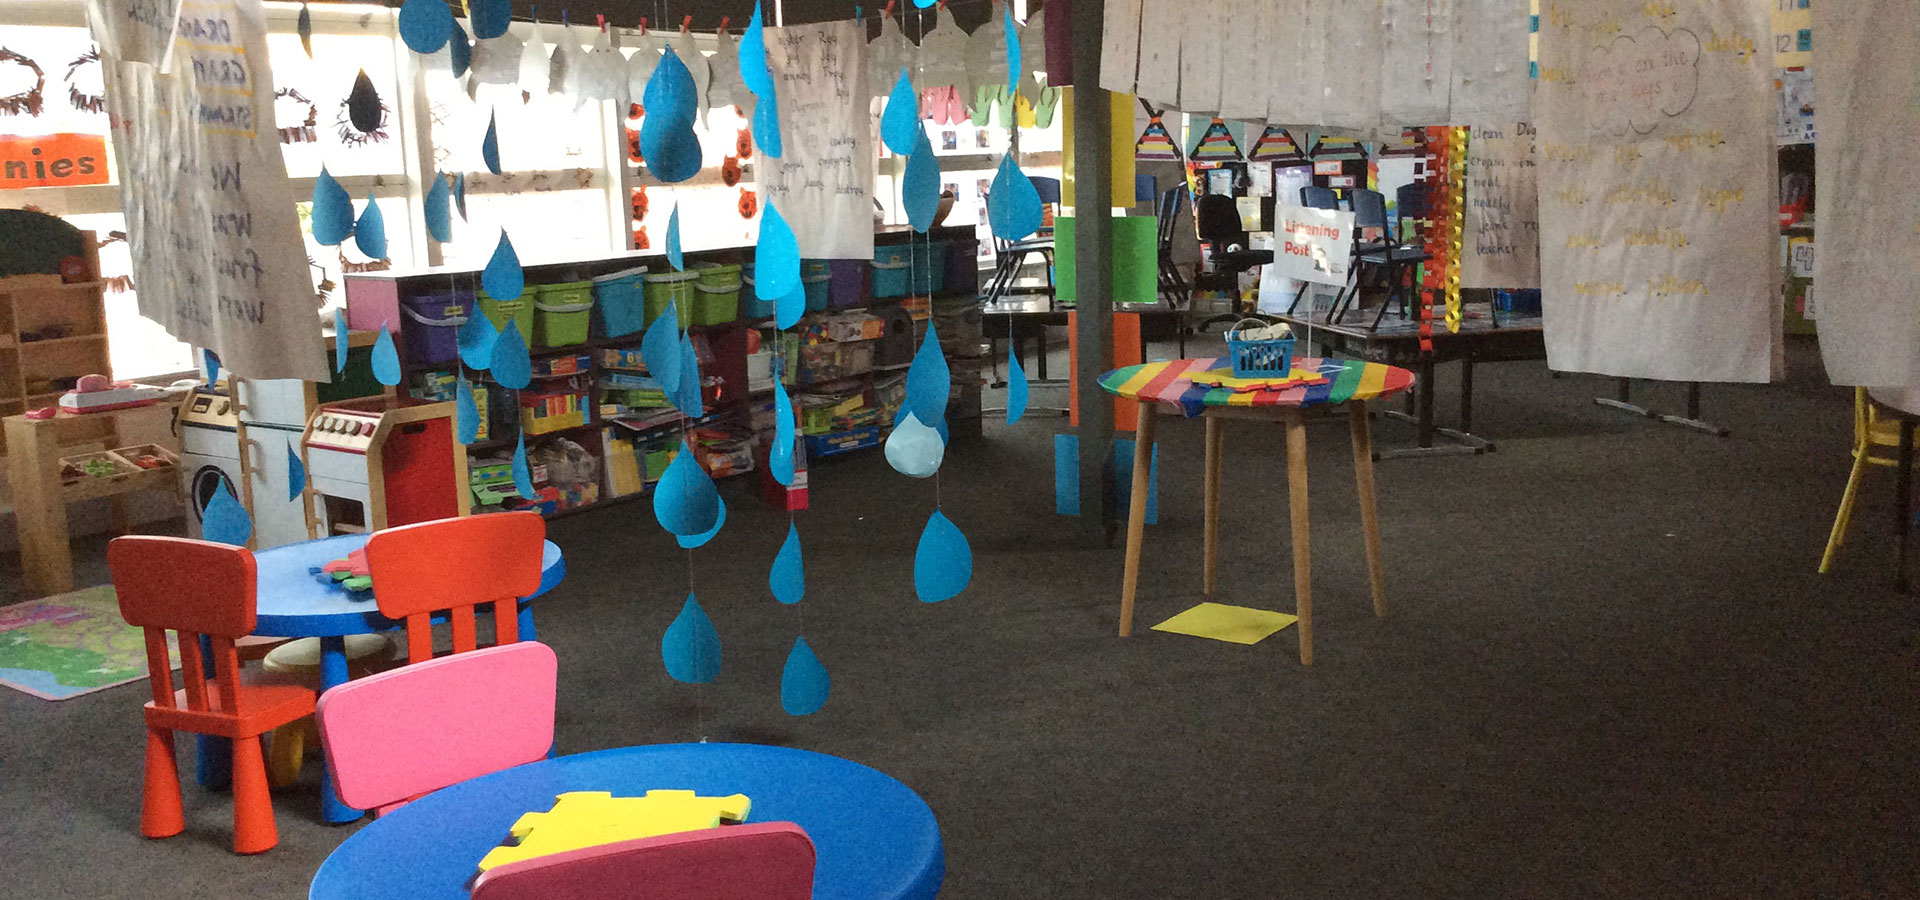 Stawell West PS Facilities